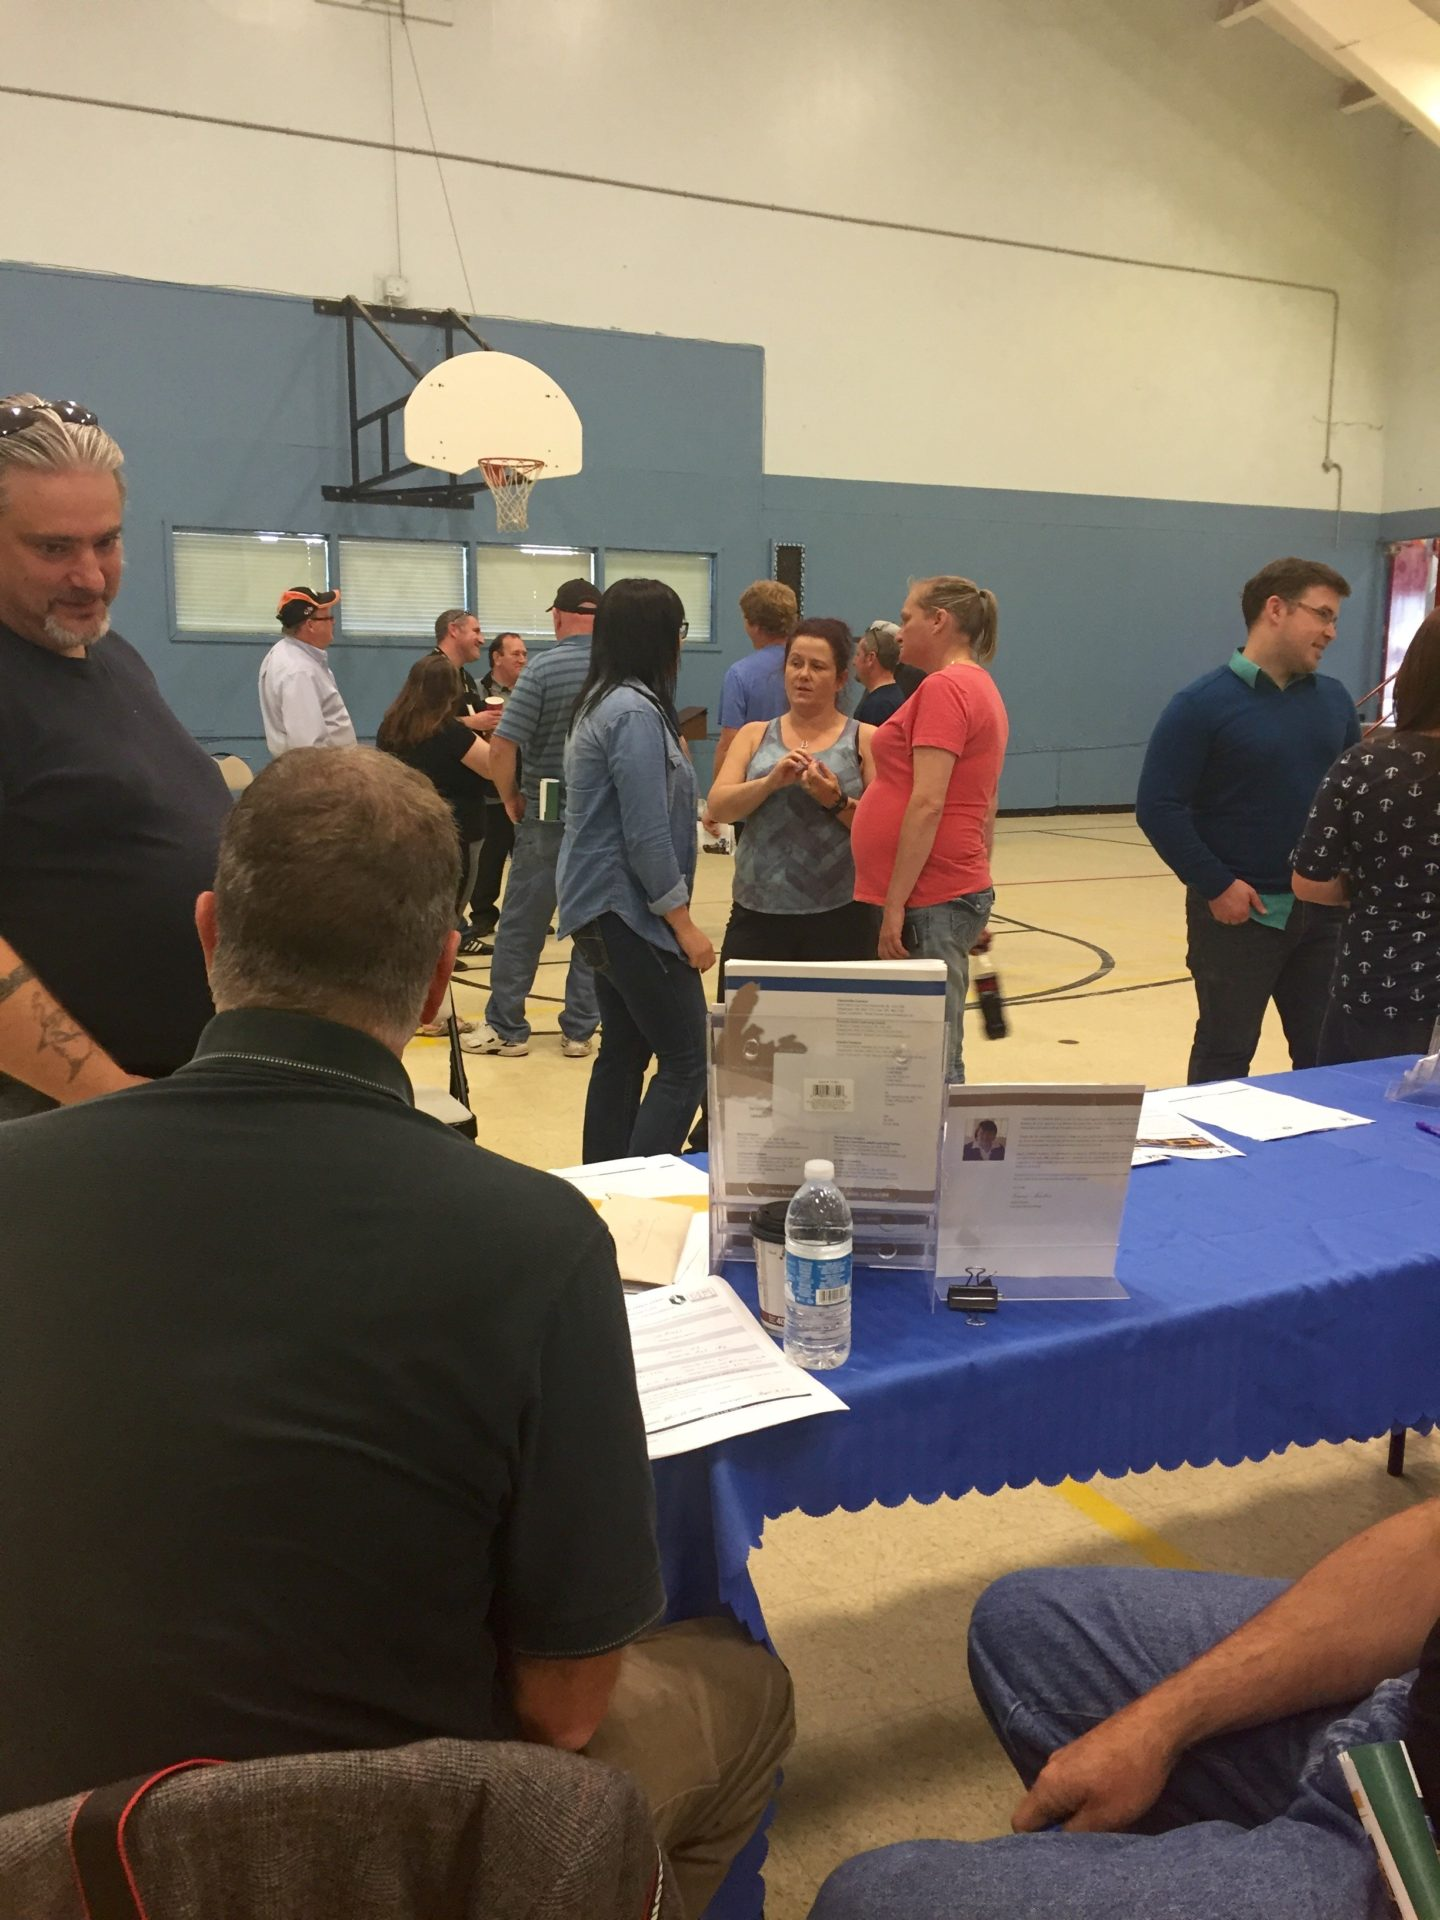 Open house attendees speak with CFI and Keyin college representatives about the Haul Truck Operator Program